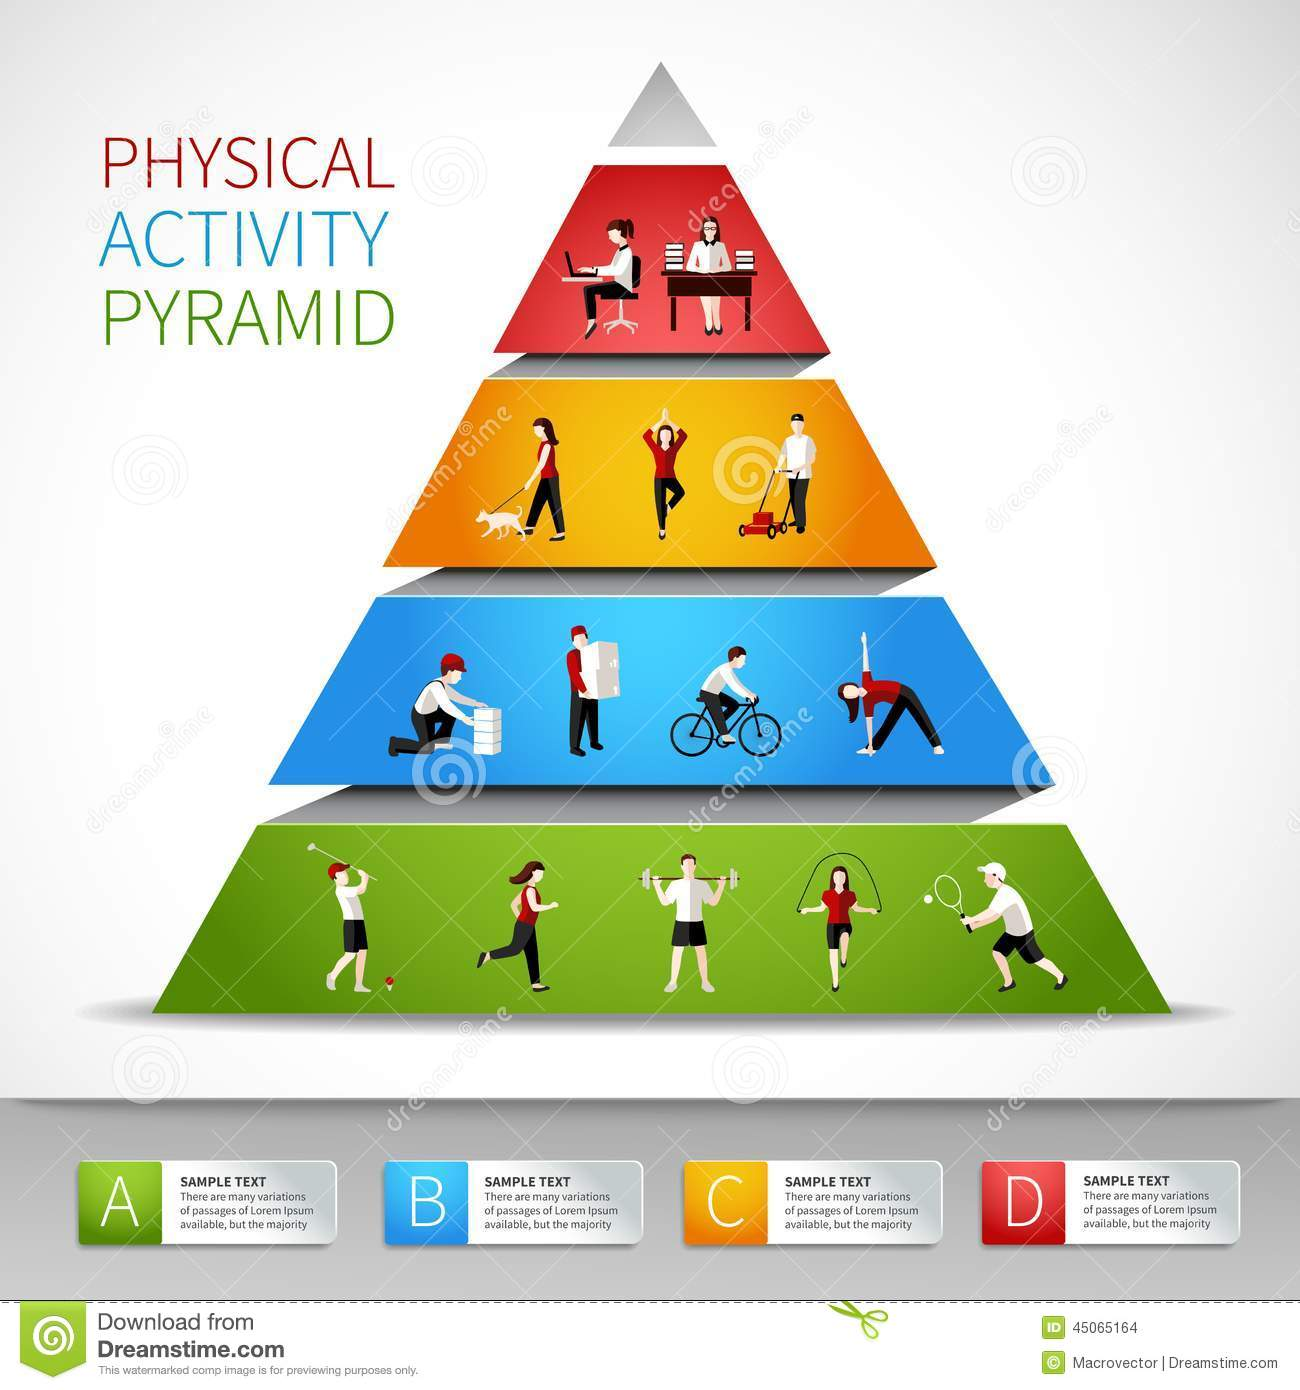 pyramid principle exercise Figure 52 the new physical activity pyramid for teens source: cb corbin moderate physical activity moderate physical activity is the first step in the physical activity pyramid, and it should be performed daily or nearly every day.